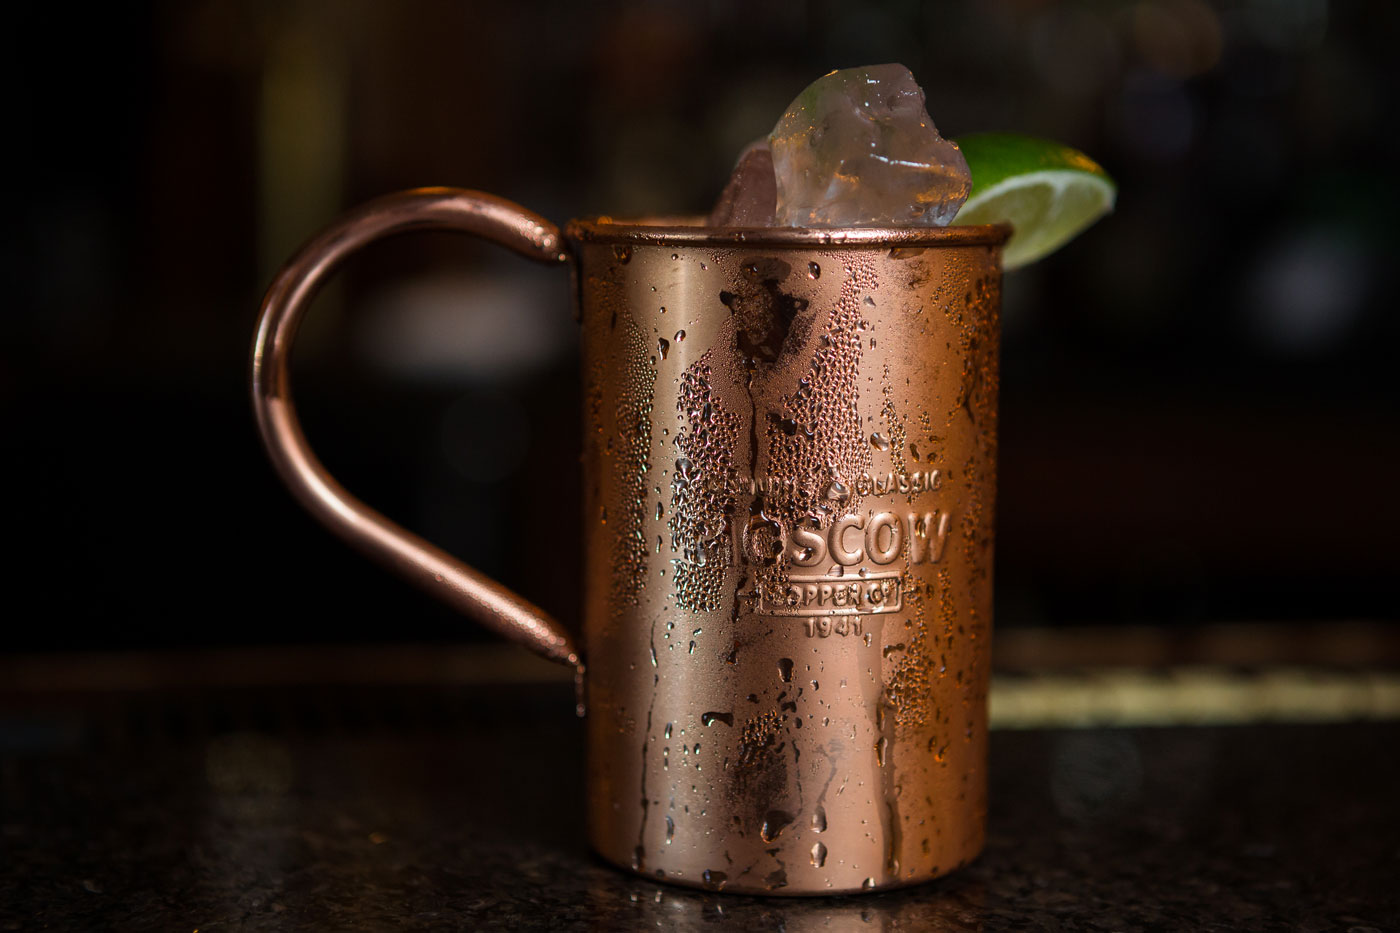 moscow-copper-co-women-of-the-vine-7-meritage-resort